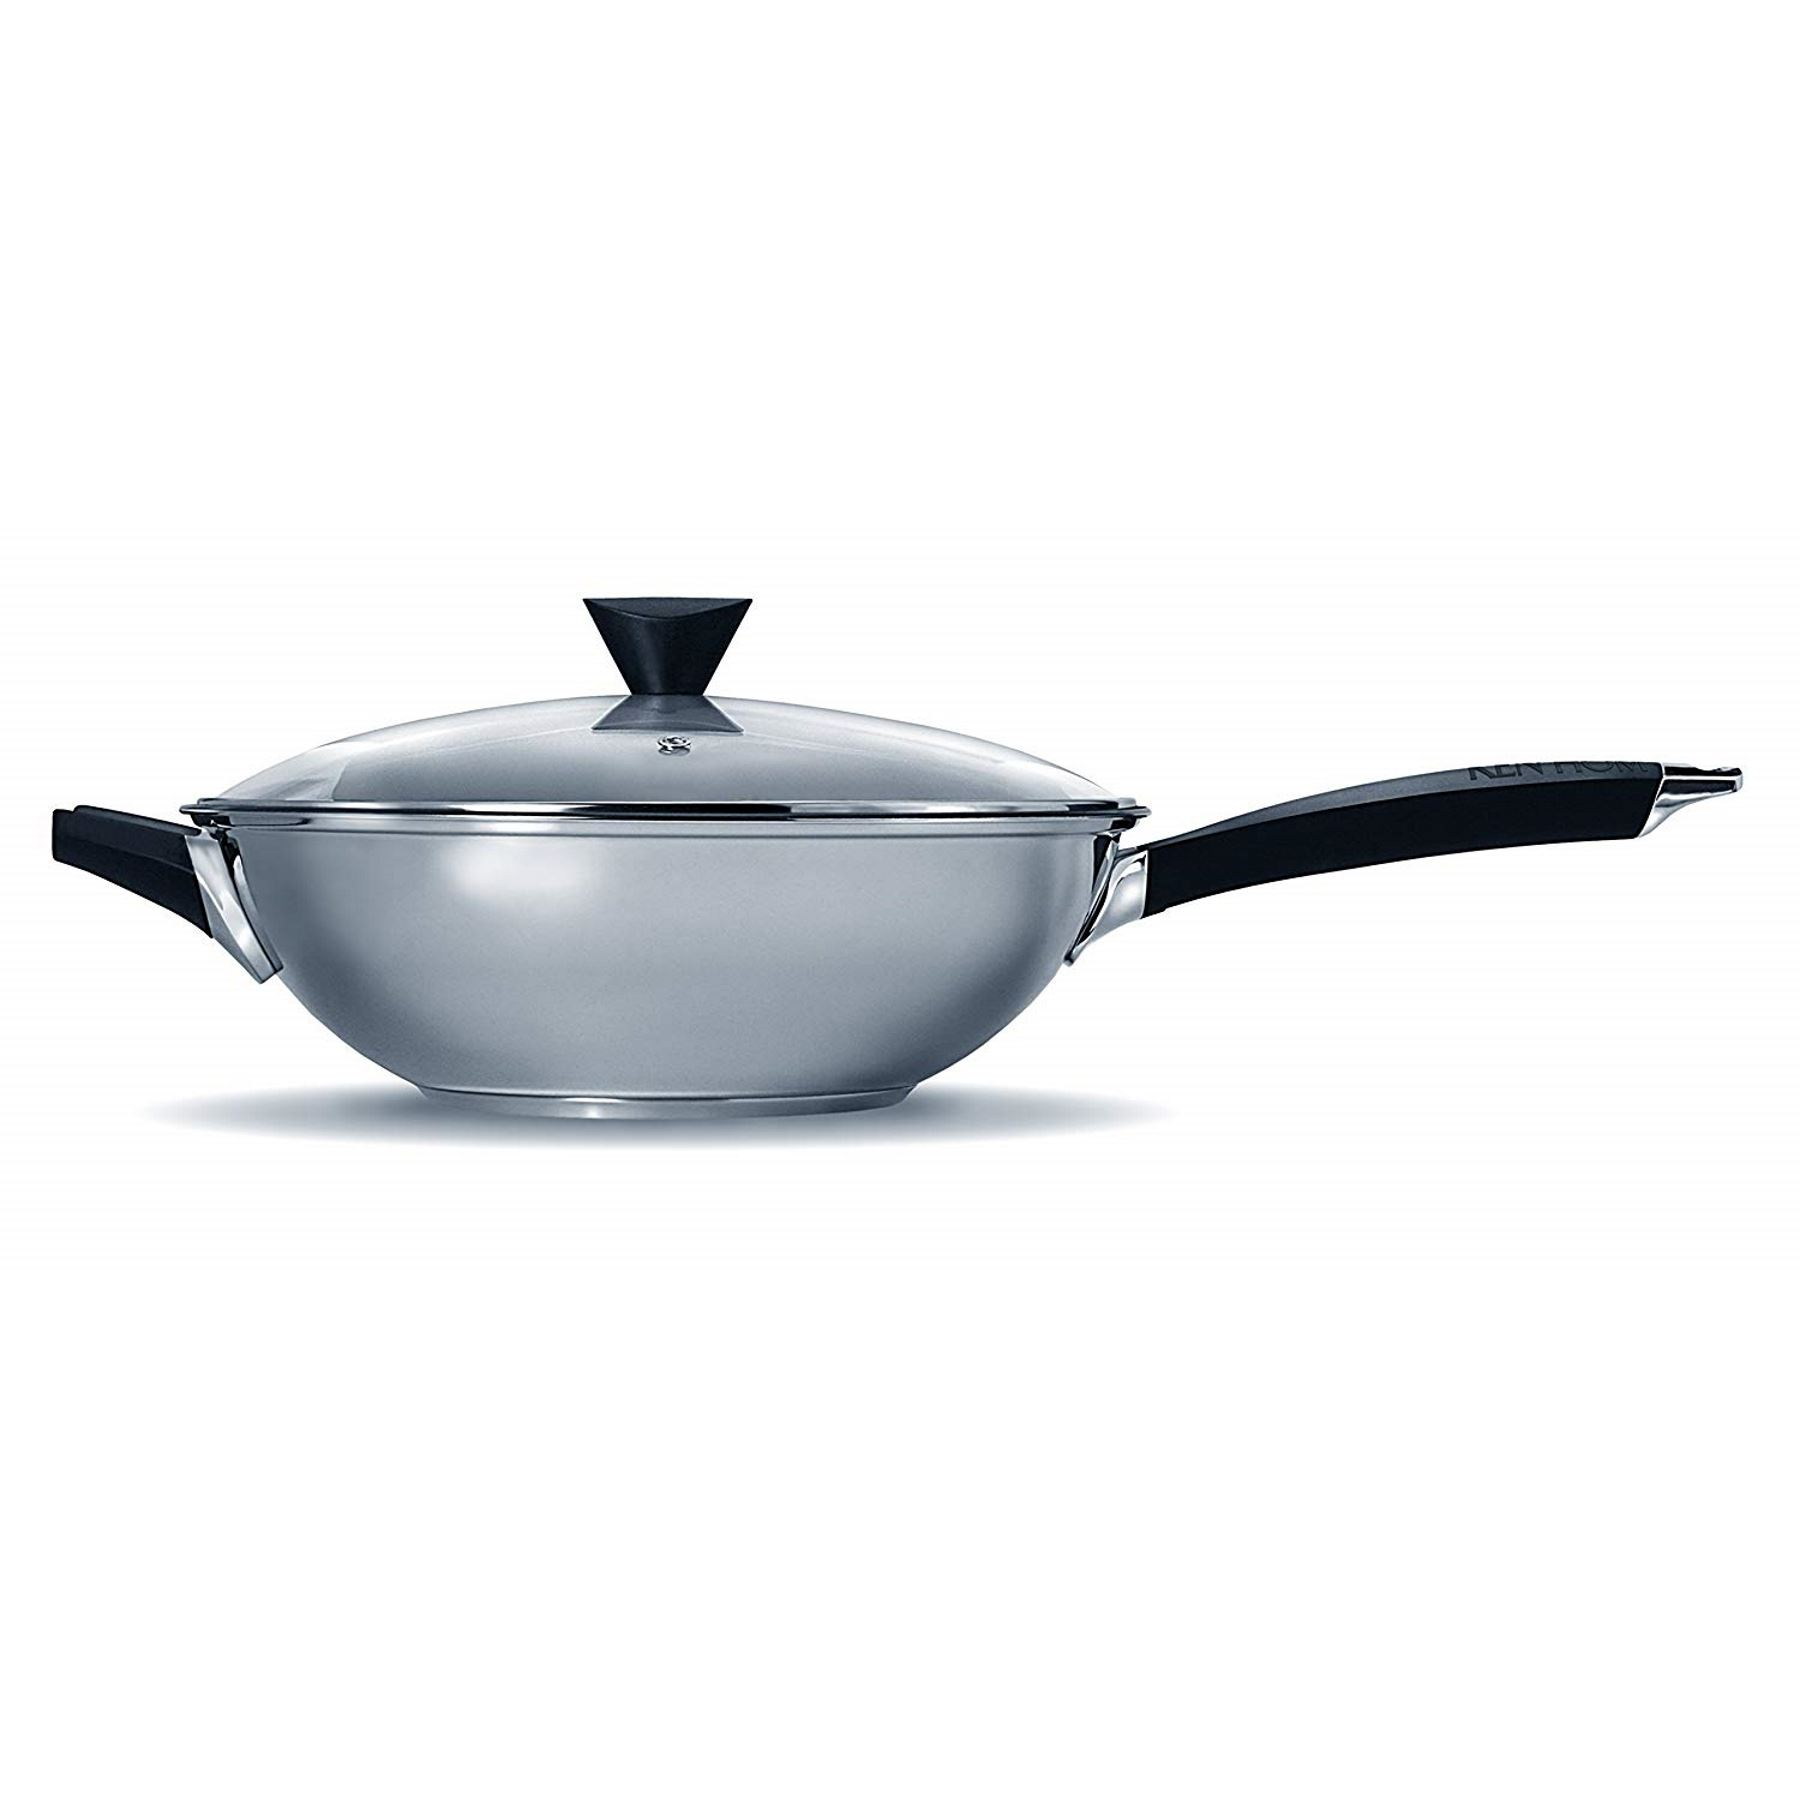 Ken Hom Performance Range Wok 2 Piece Set With Lid Stainless Steel